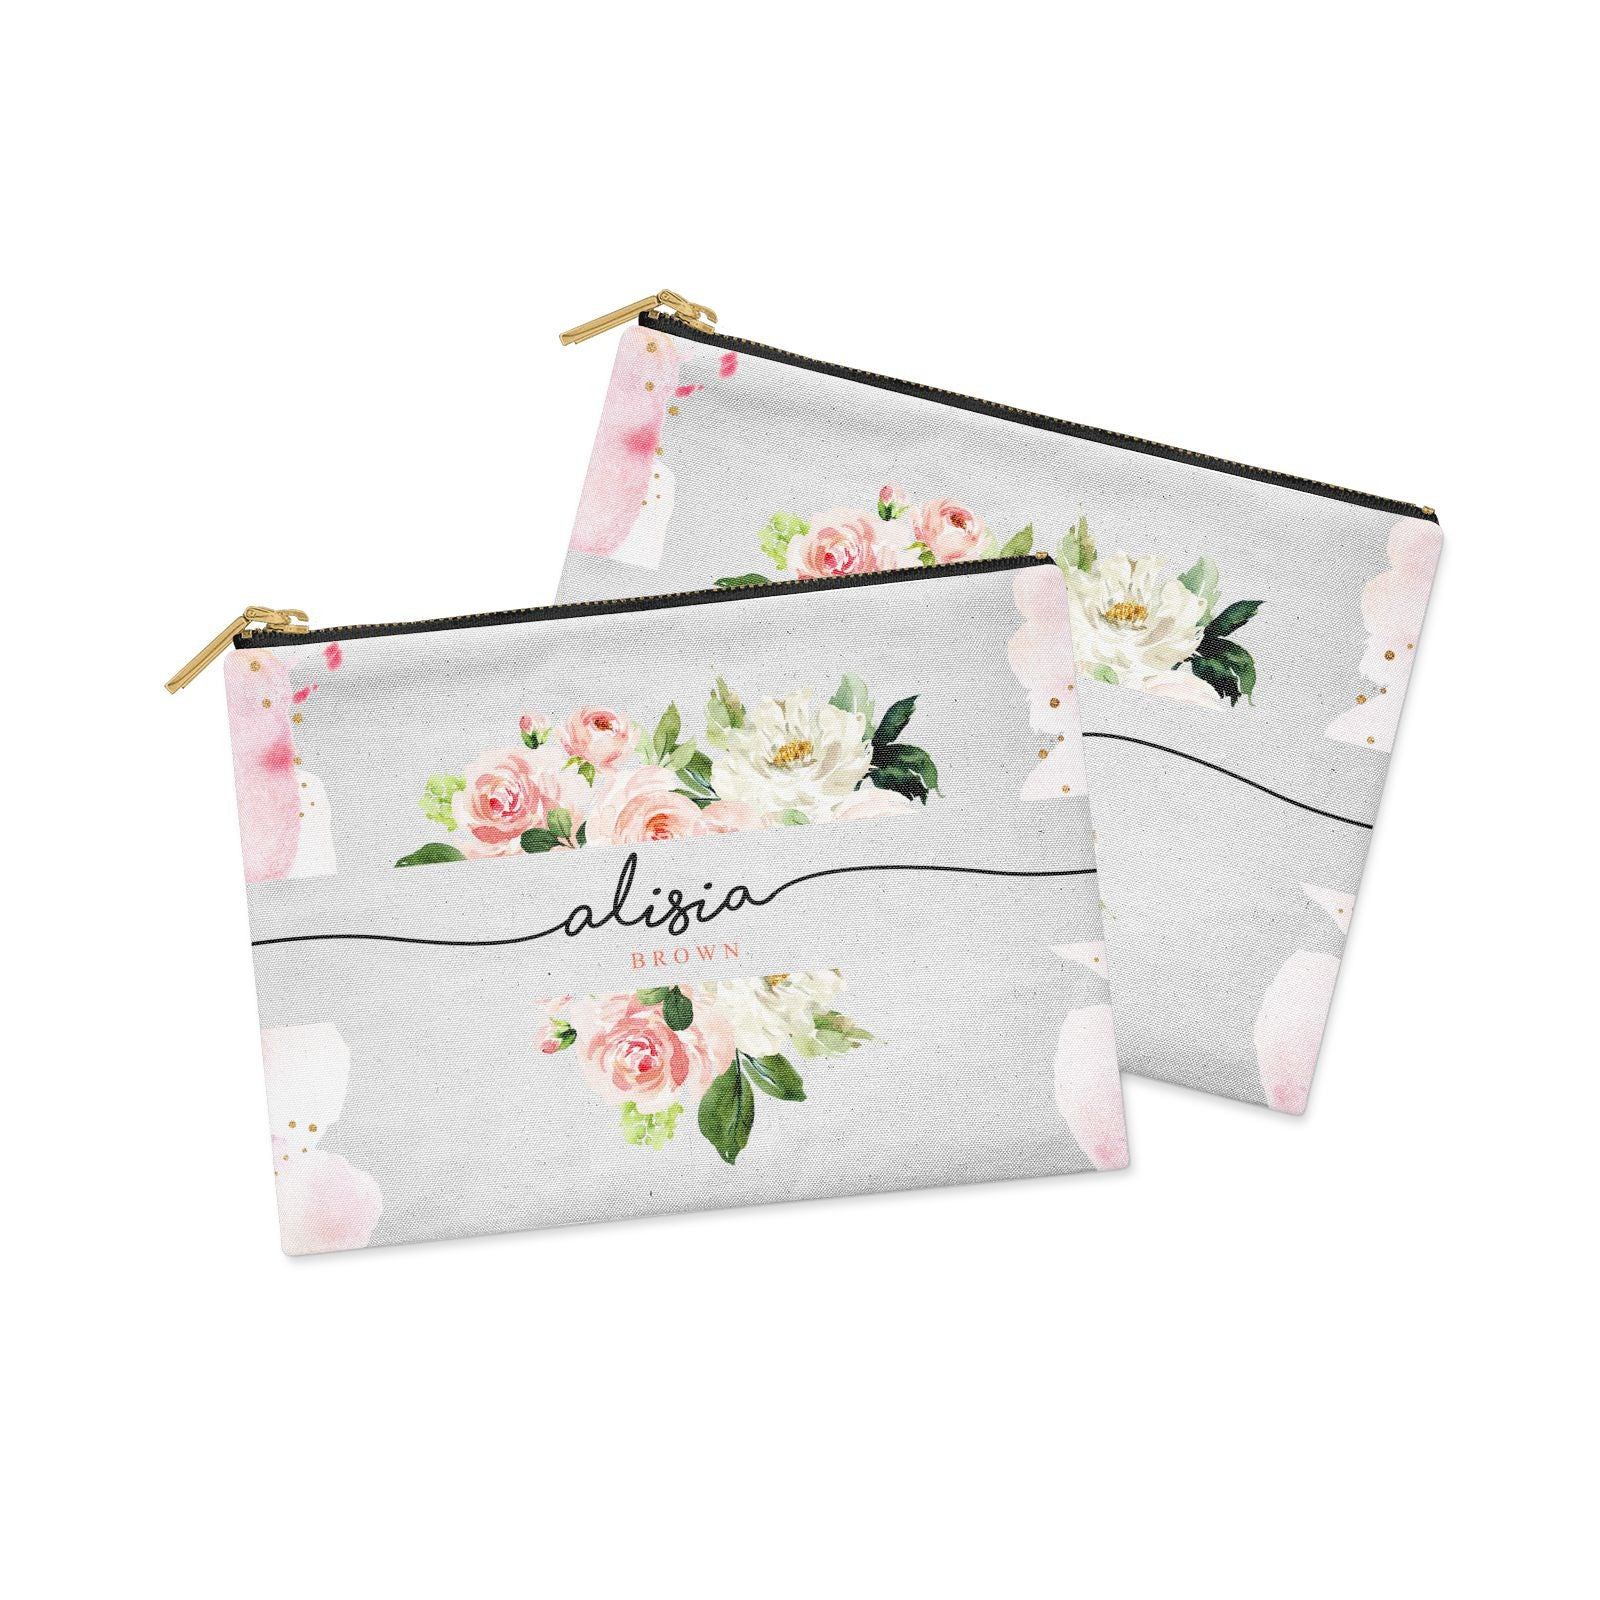 Pretty Roses Personalised Name Clutch Bag Zipper Pouch Alternative View